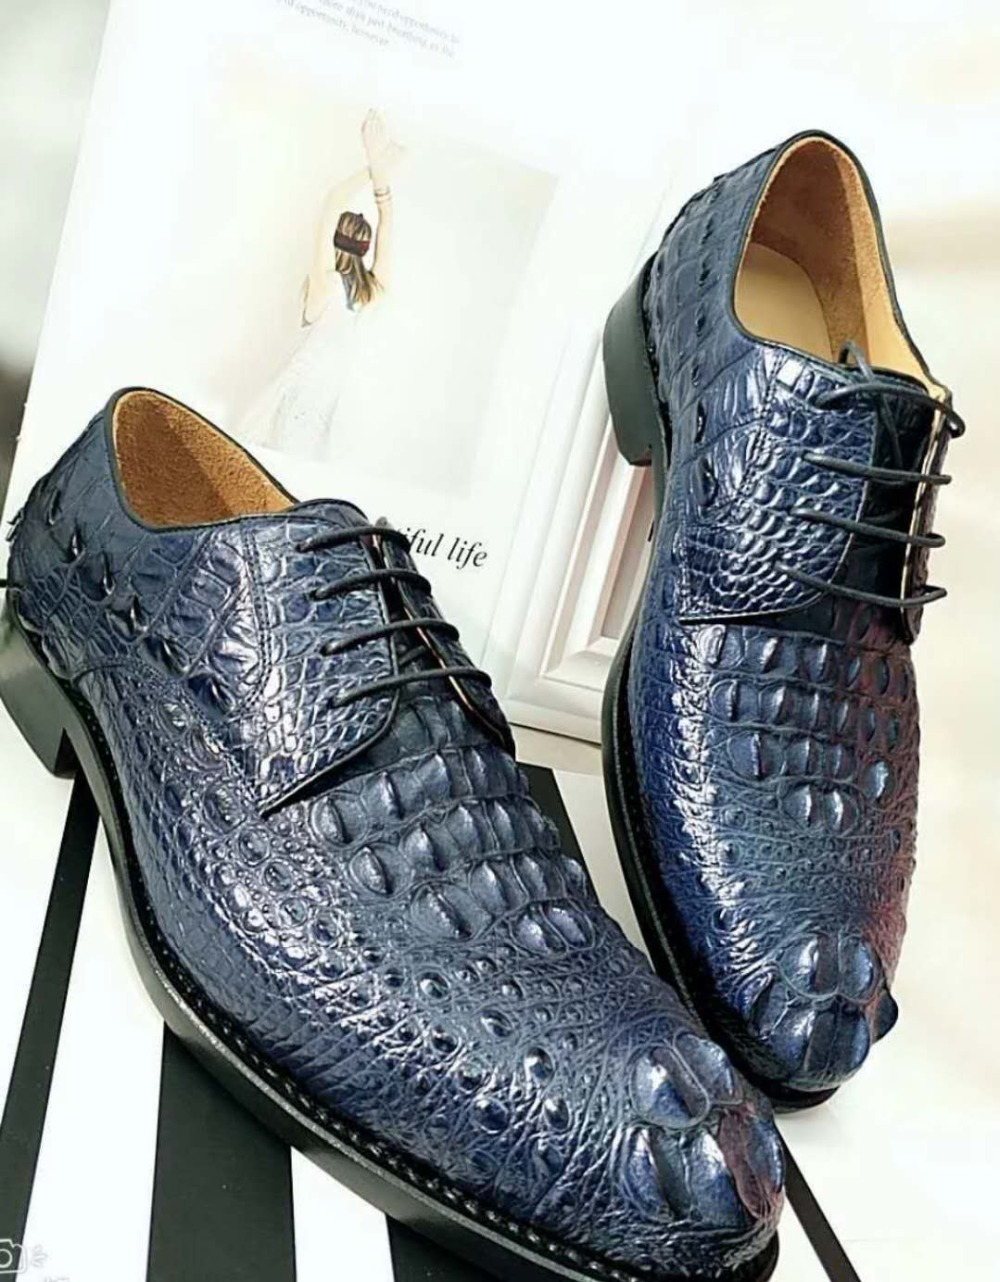 100% Genuine real crocodile head skin men shoe durable solid crocodile tail skin men dress business shoe dark blue color 100% Genuine real crocodile head skin men shoe durable solid crocodile tail skin men dress business shoe dark blue color